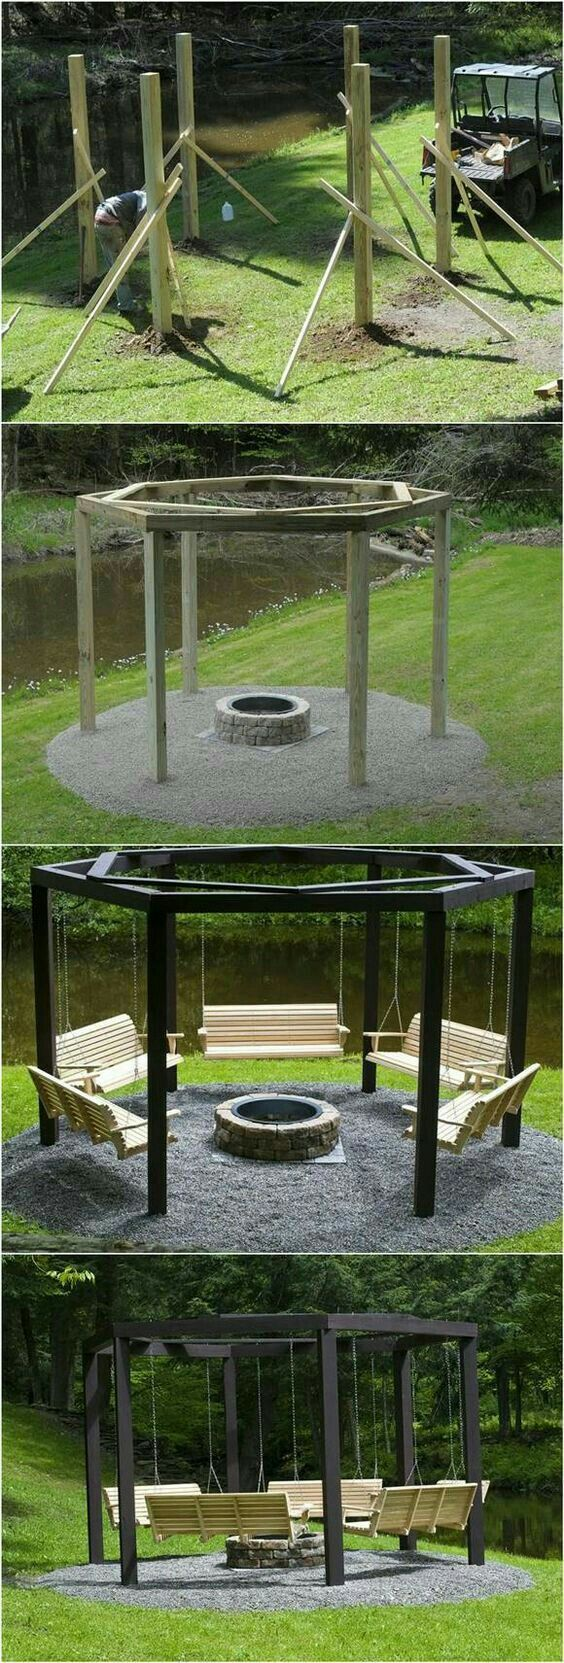 best images about promocionales on pinterest fire pits